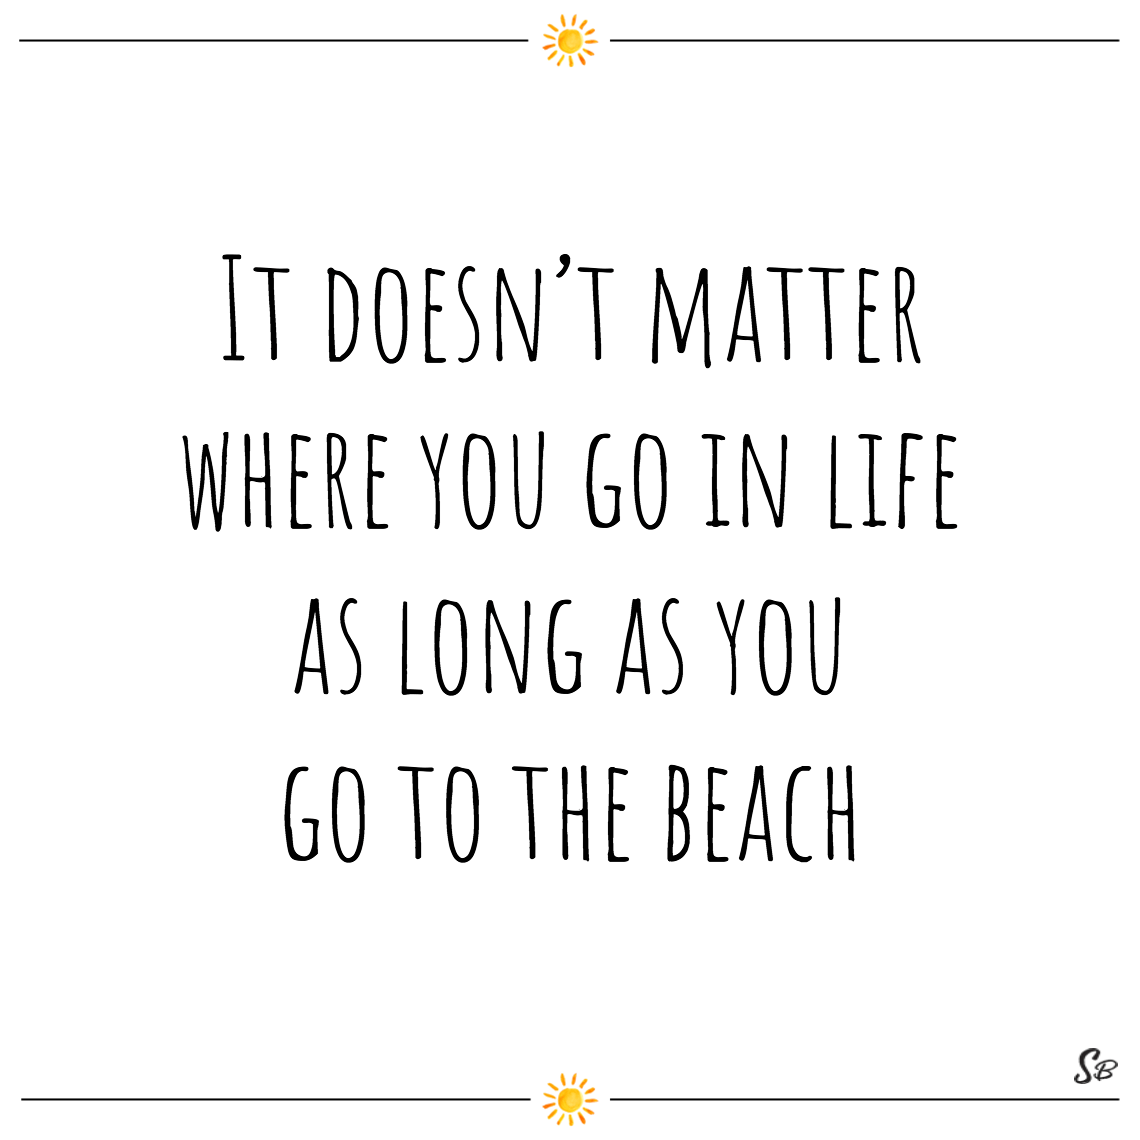 Amazing Quotes 20 Amazing Beach Quotes To Get You In The Mood  Spirit Button